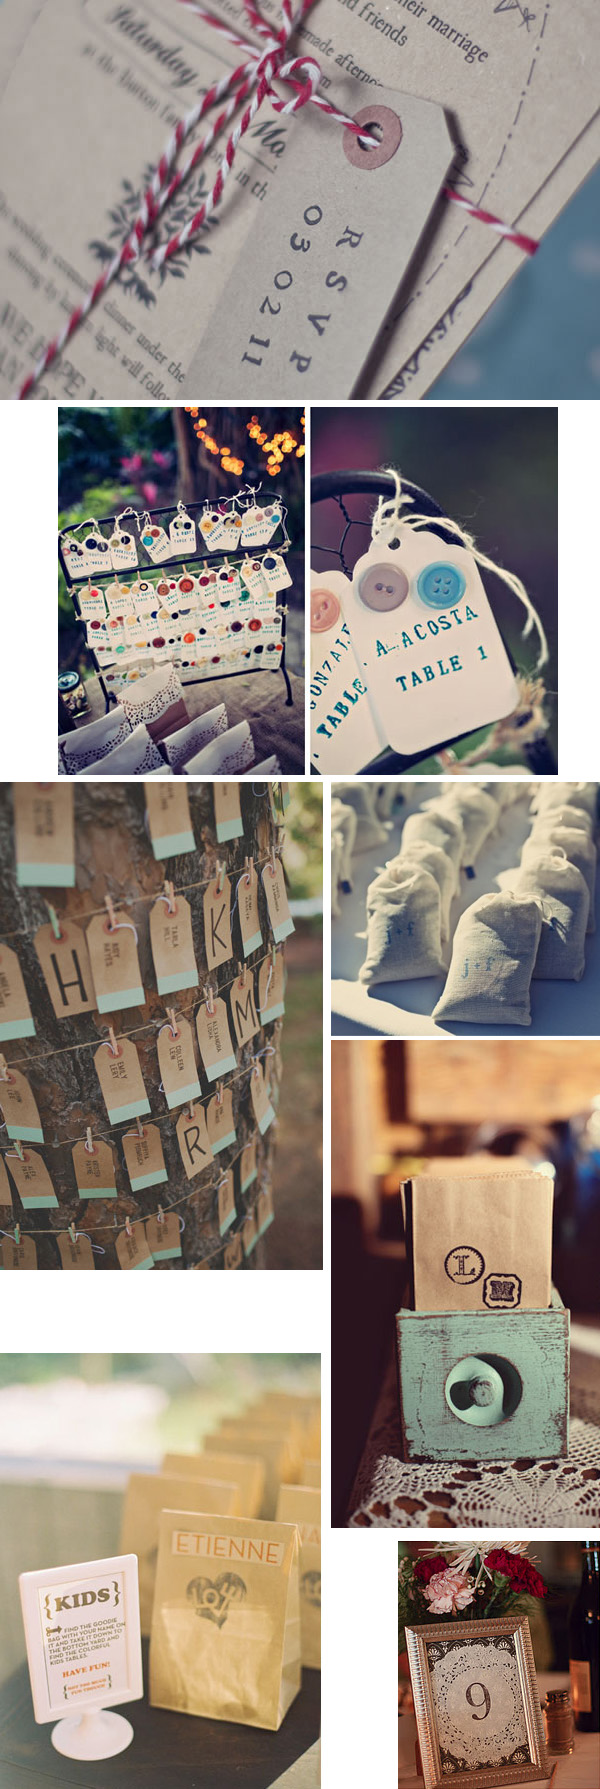 rubber stamps diy wedding decoration ideas